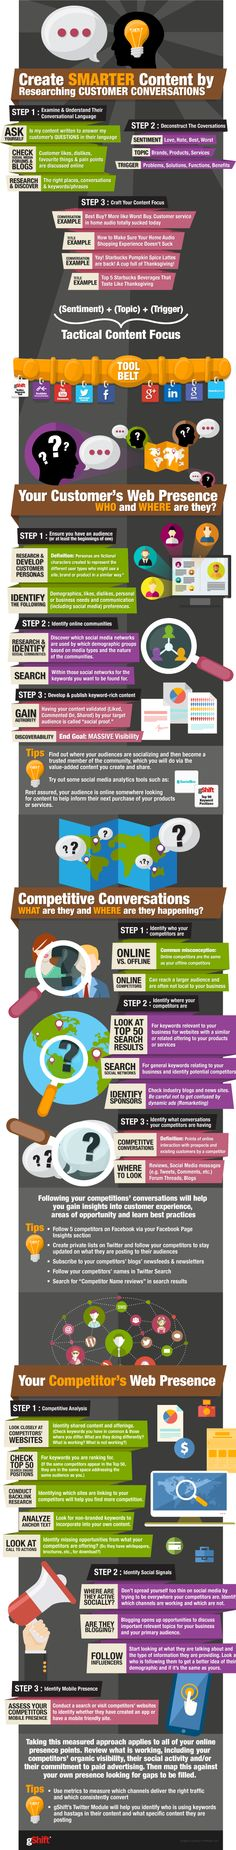 Creating Smarter Content - The #Infographic and 4-Part Blog Series Part 1 - Research Customer Conversations Part 2 - Customer's Web Presence Part 3 - Competitive Conversations Part 4 - Competitor's Web Presence